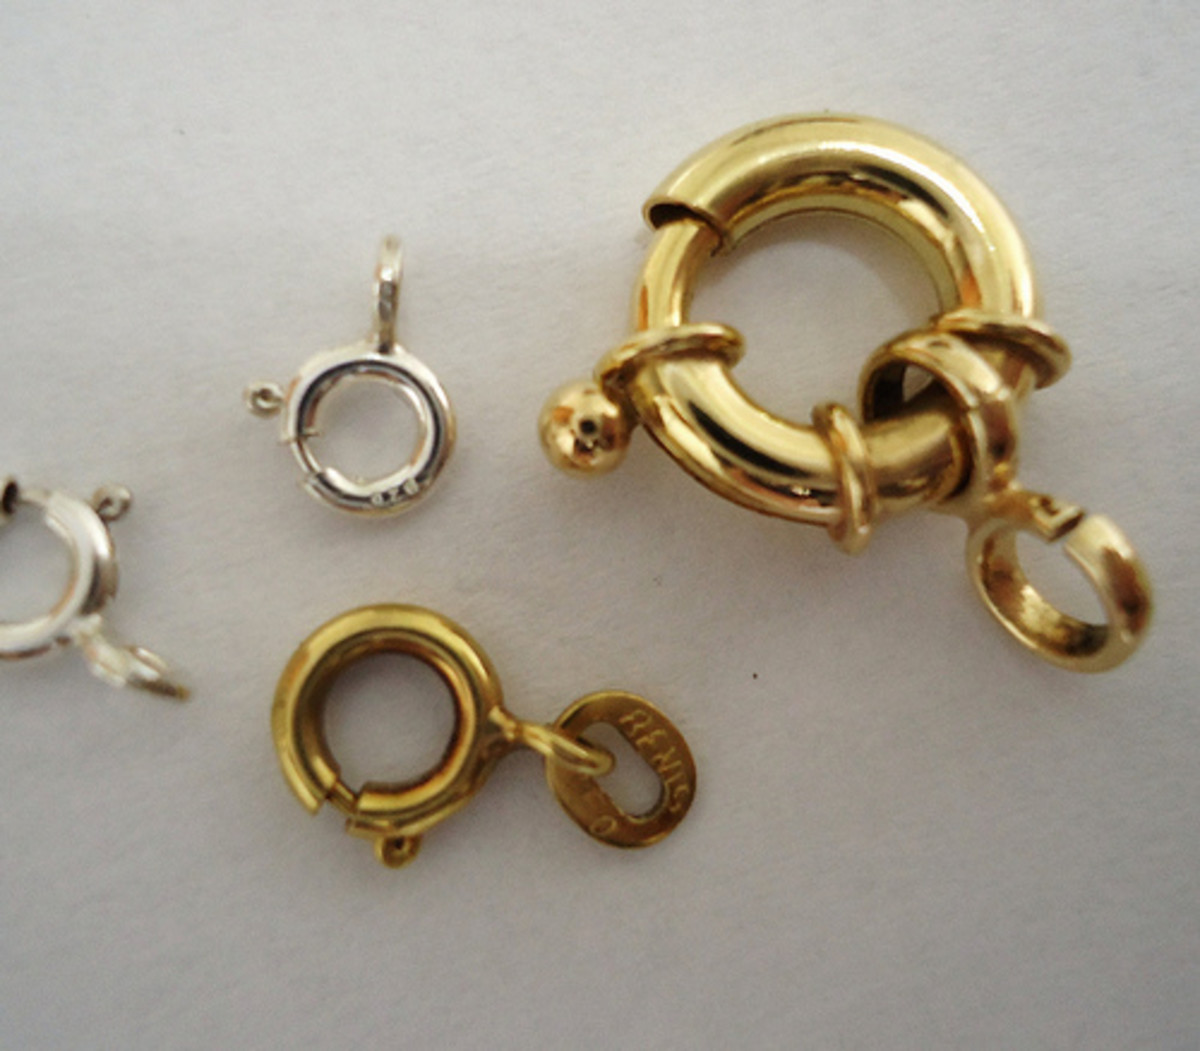 types of jewelry clasps types of jewelry clasps list of findings and where to buy 1472